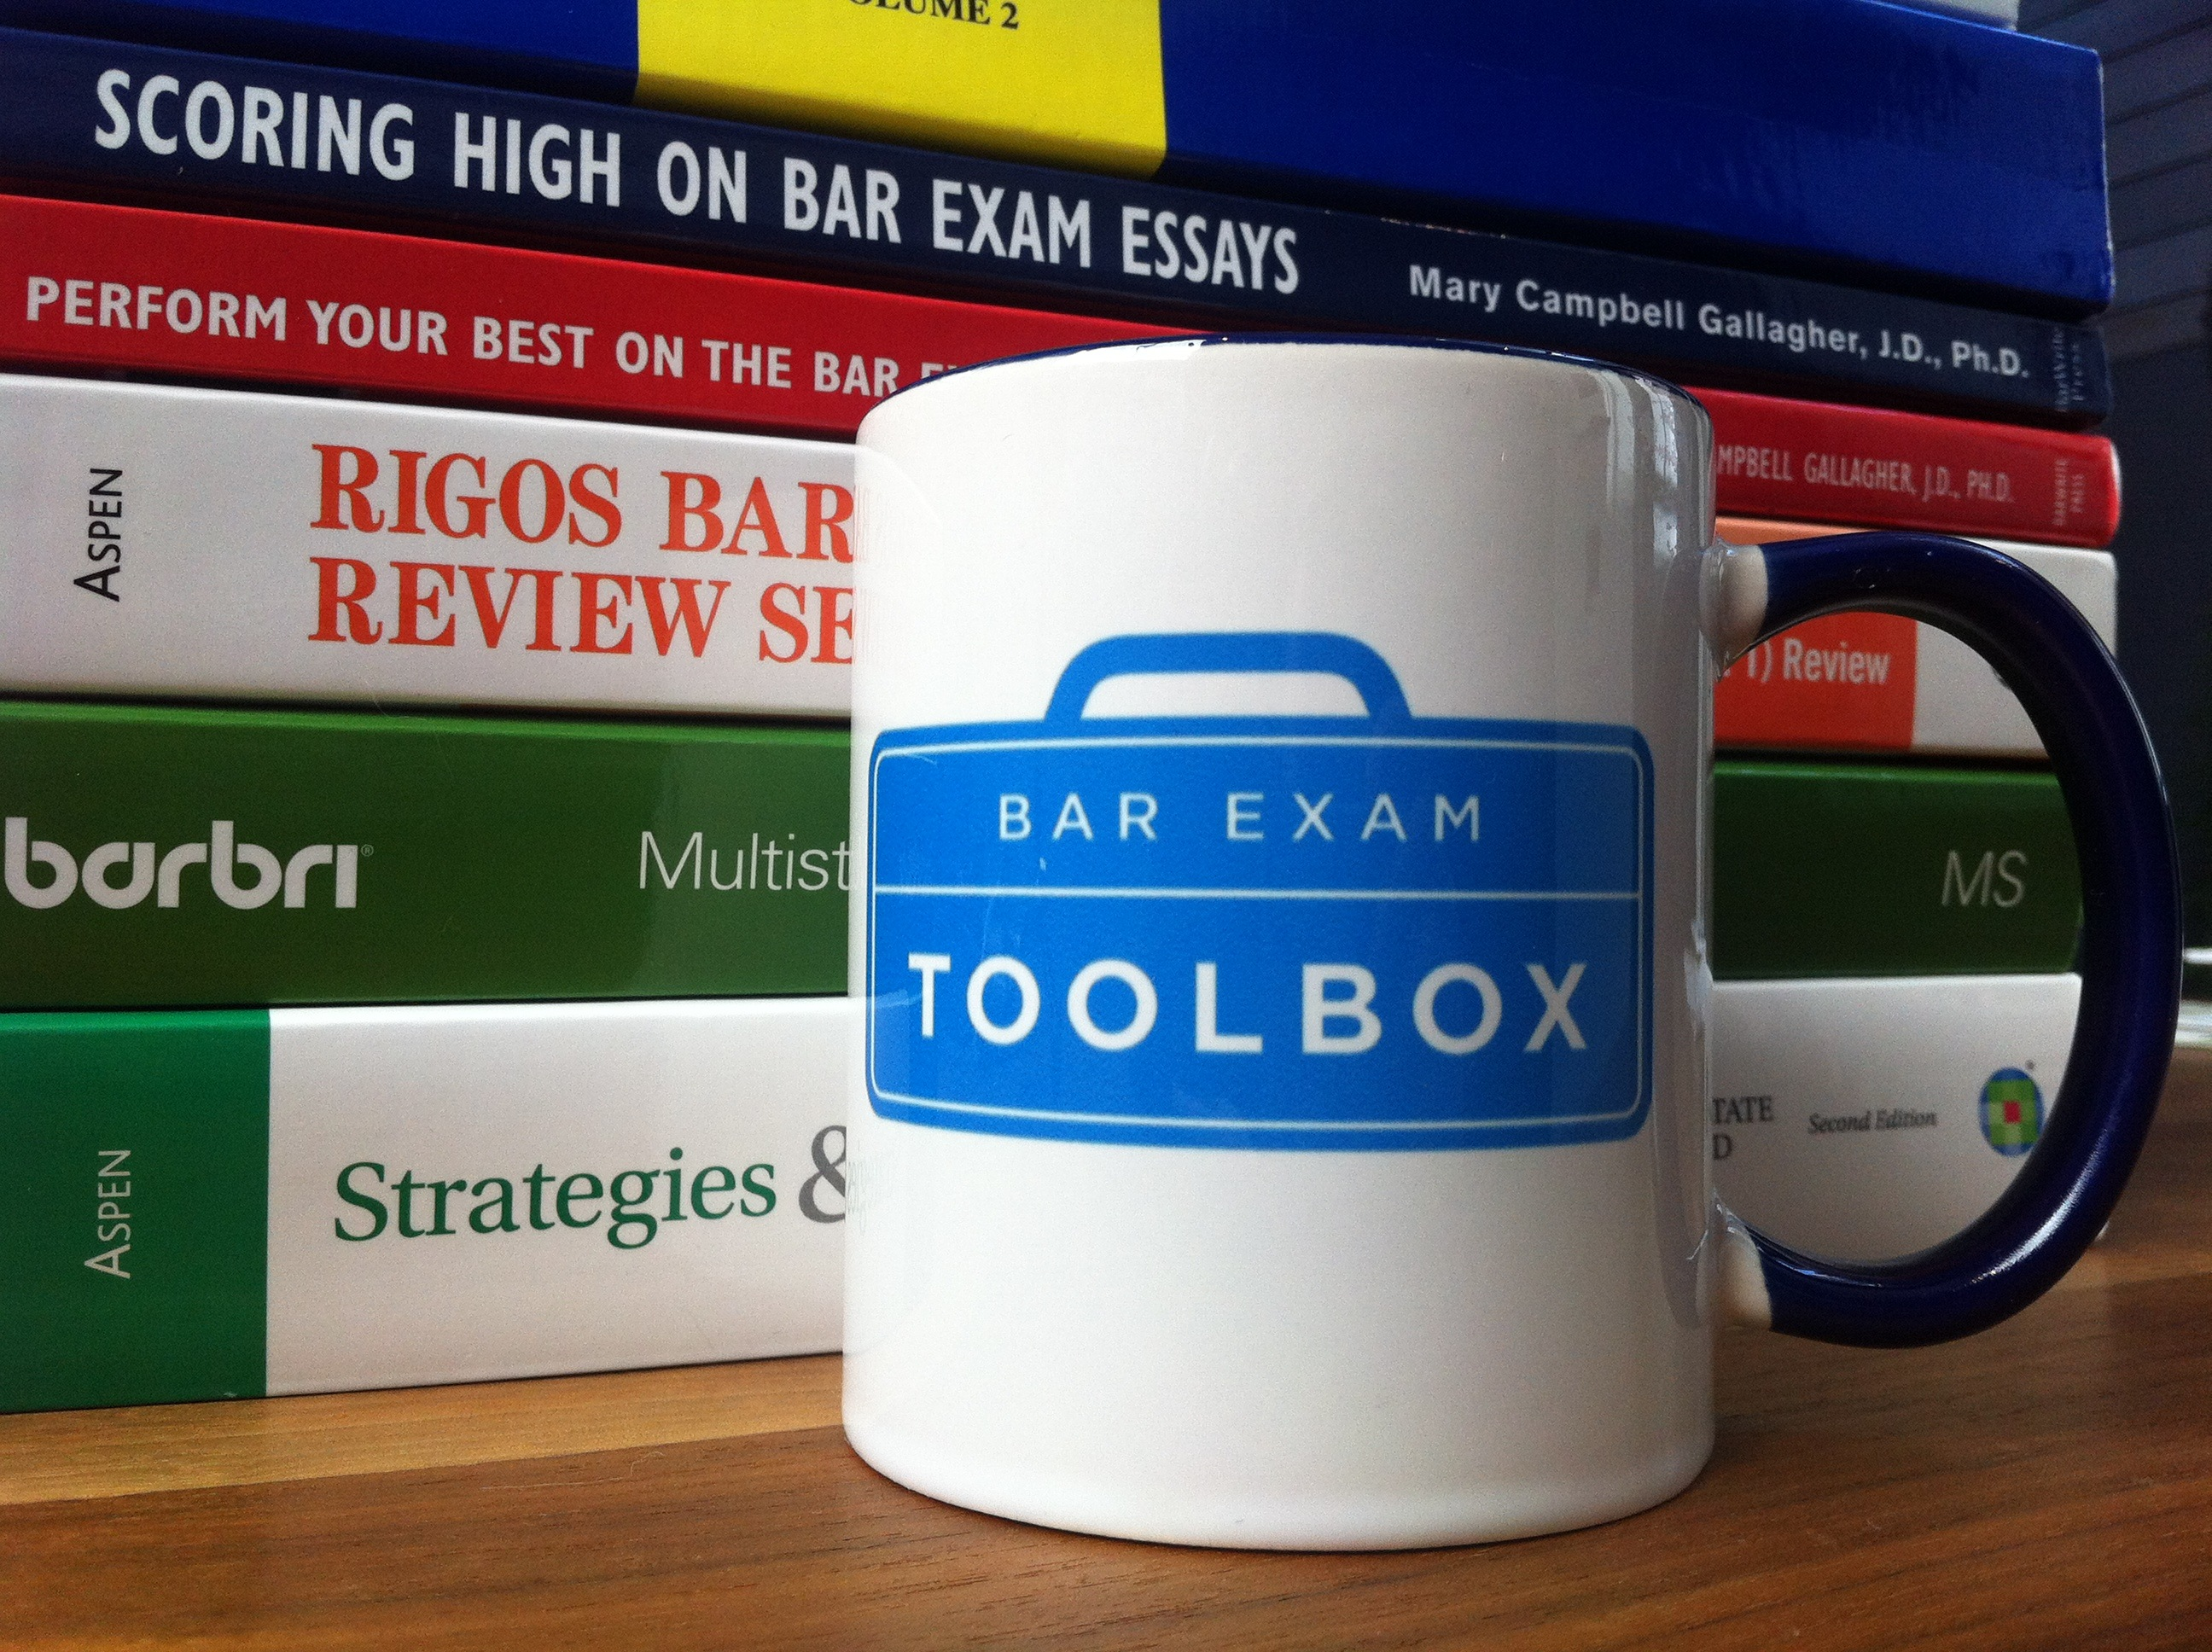 Studying for the bar exam - 10 tips - YouTube